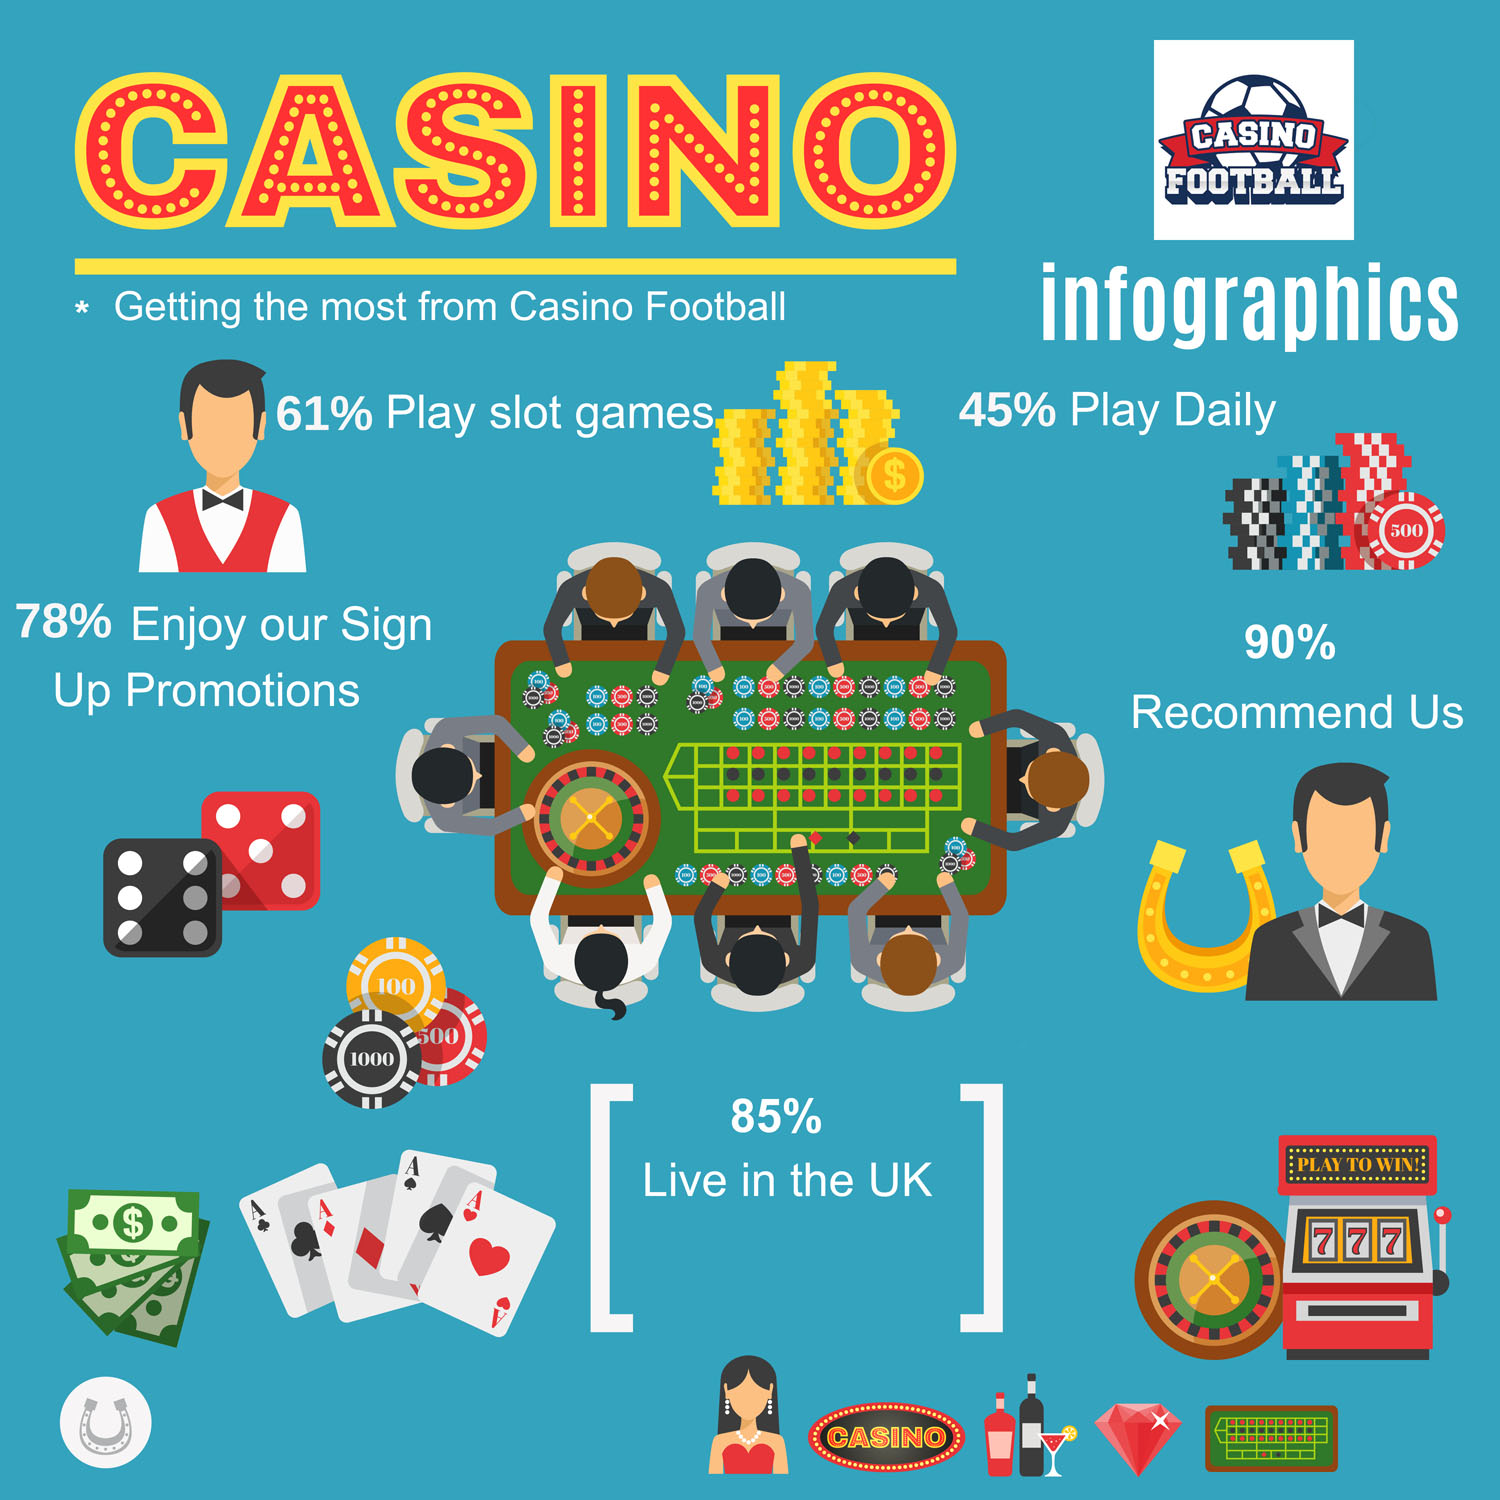 Casino Football - Customer Engagement Research